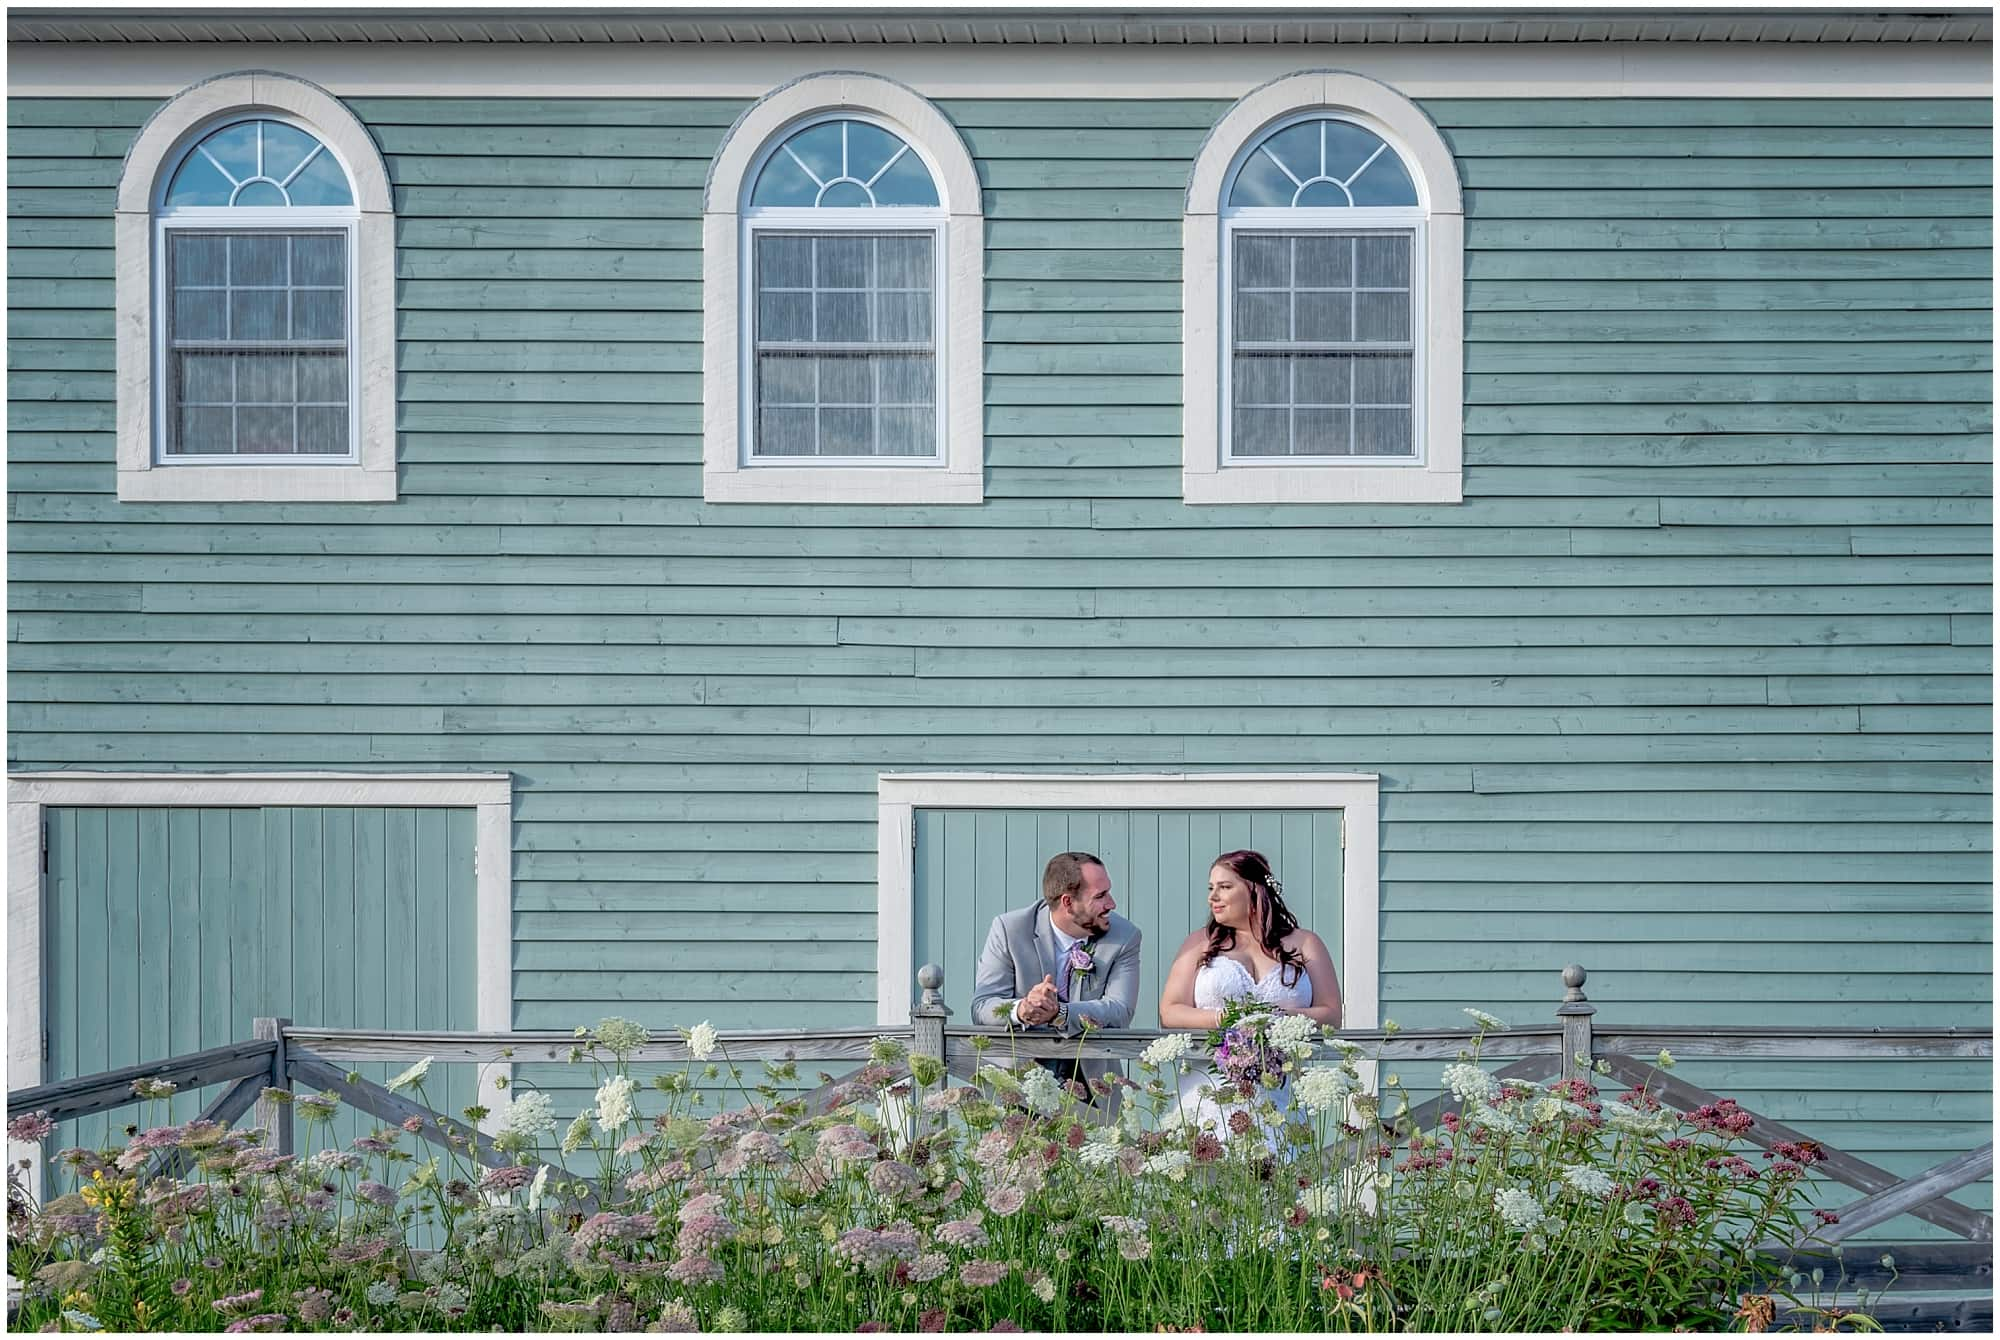 The bride and groom pose against a rustic barn style building during their White Point Beach Resort wedding photos.